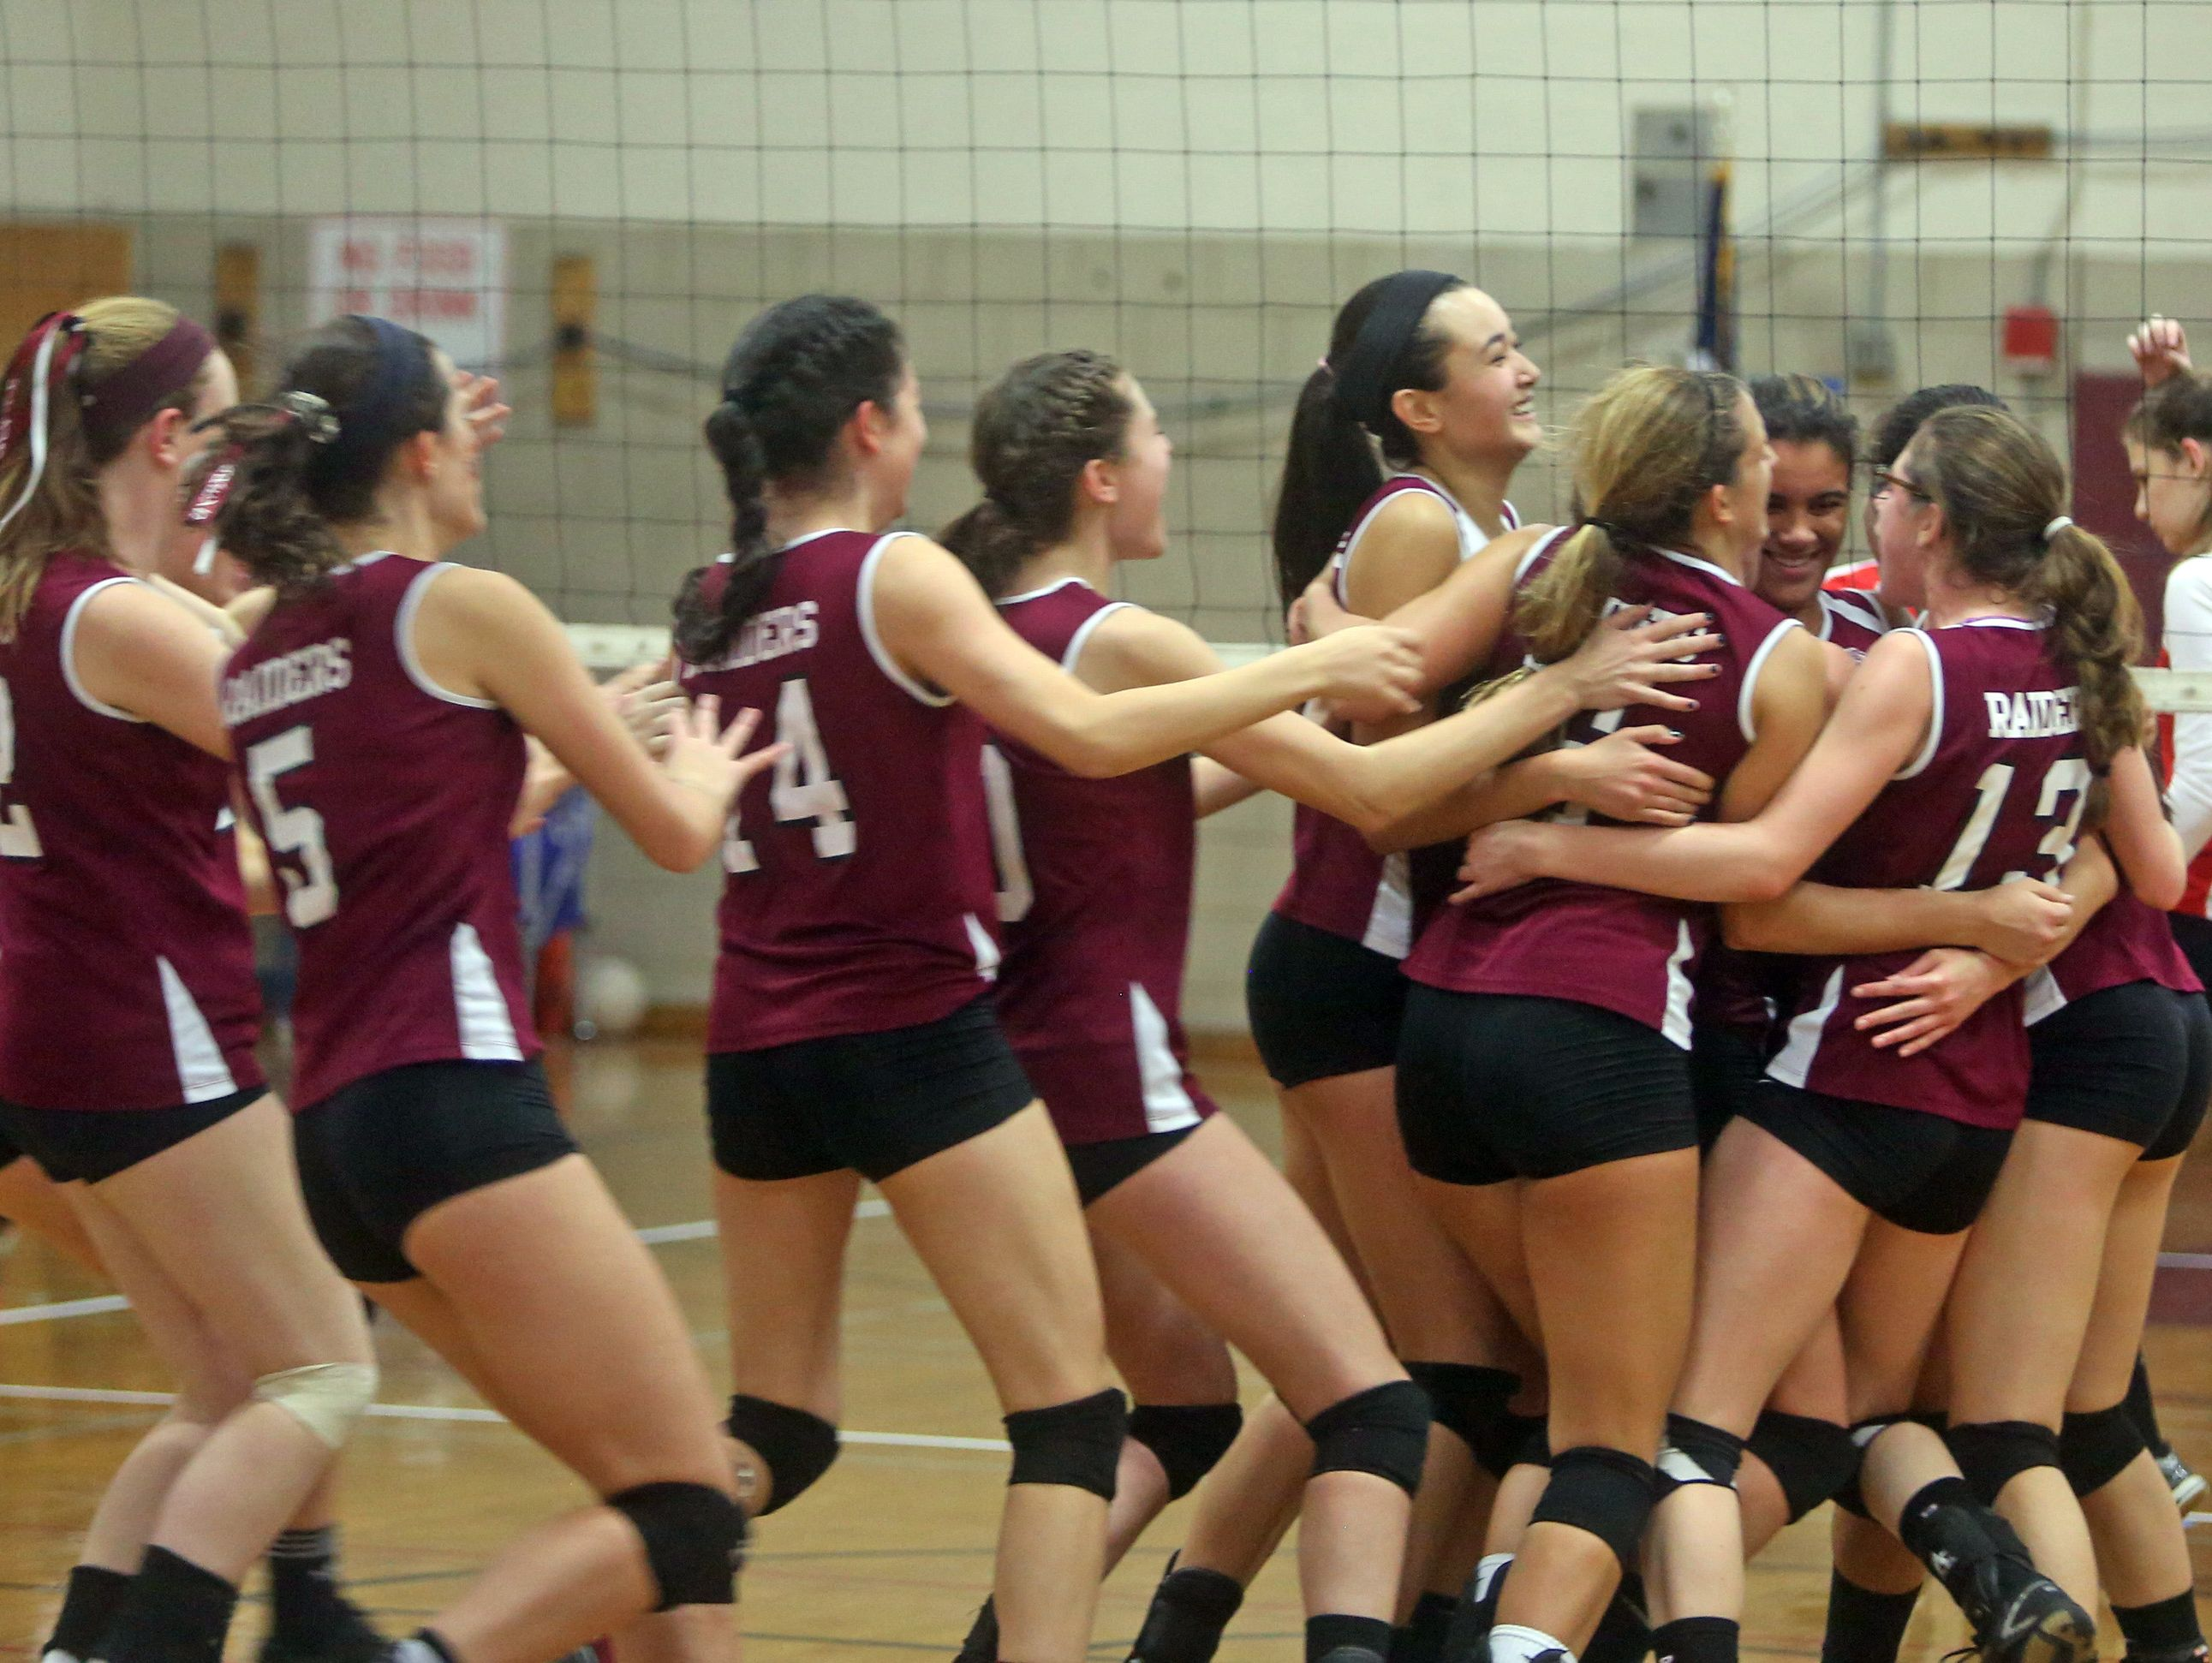 Scarsdale celebrates after defeating Fox Lane in five games in the Class AA volleyball semifinal at Scarsdale High School Nov. 5, 2015.